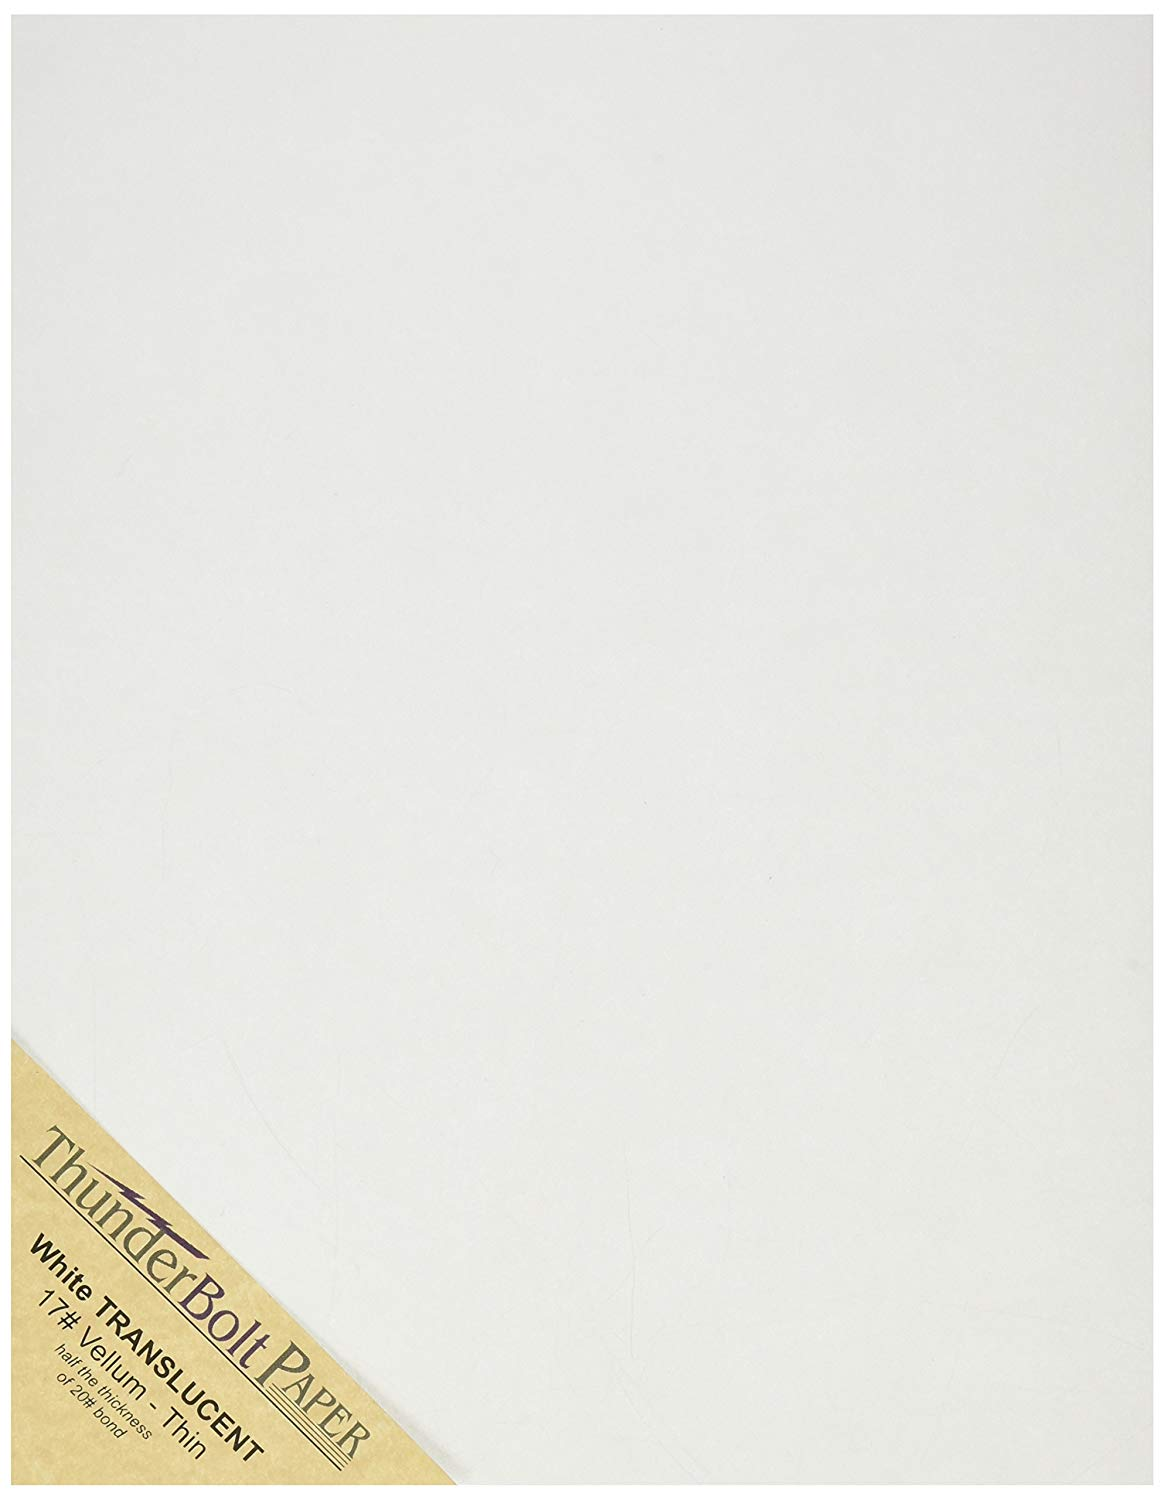 Not Clear Transparent 12 X 12 Inches Scrapbook Album|Cover Size Tracing 150 Off-White Translucent 17# Thin Sheets 17 lb//pound Light Weight Fine Quality Paper Light Gray